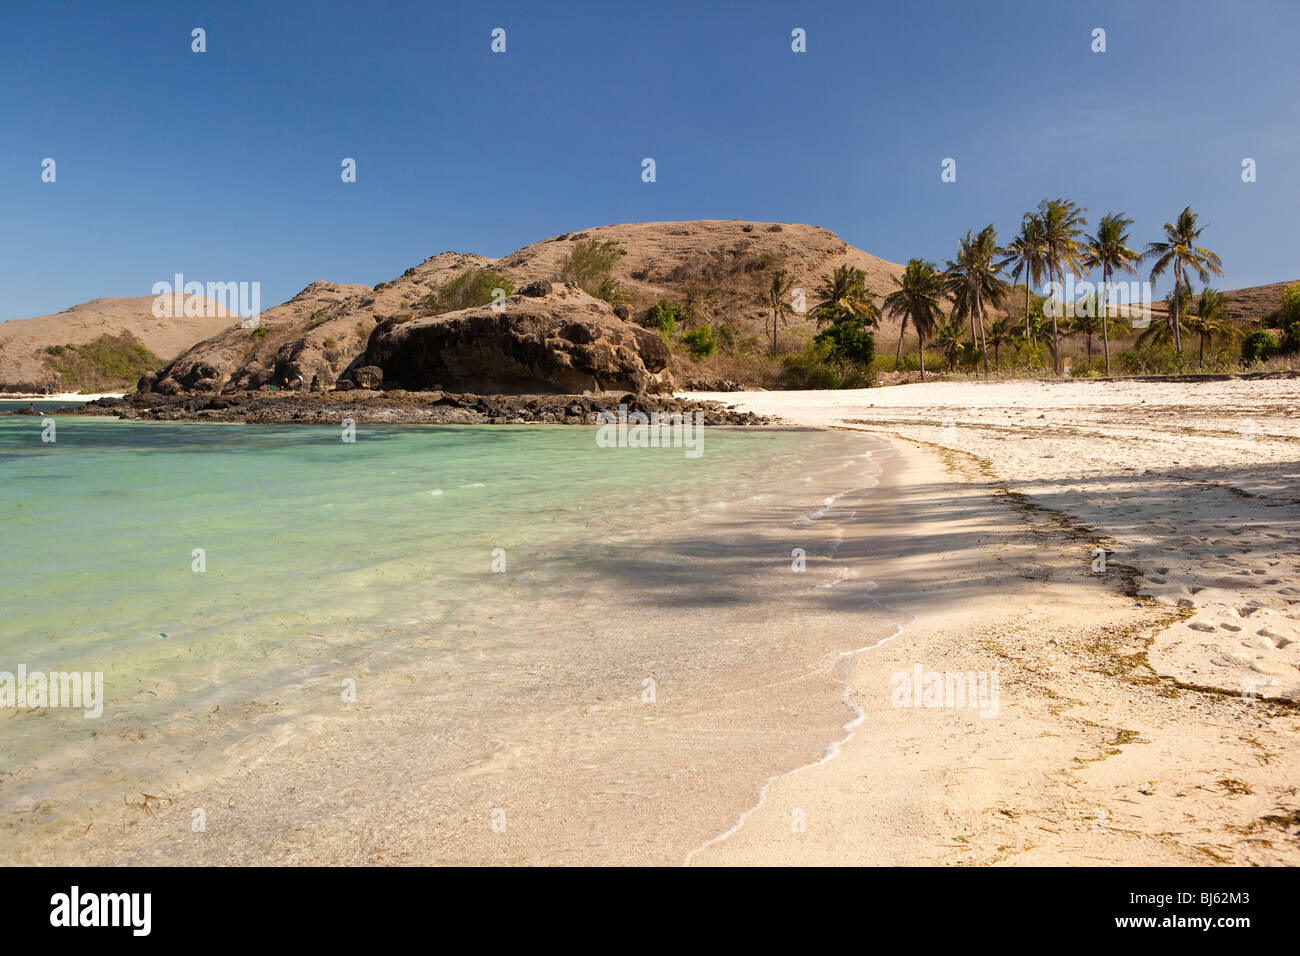 Indonesia, Lombok, Tanjung, beach - Stock Image